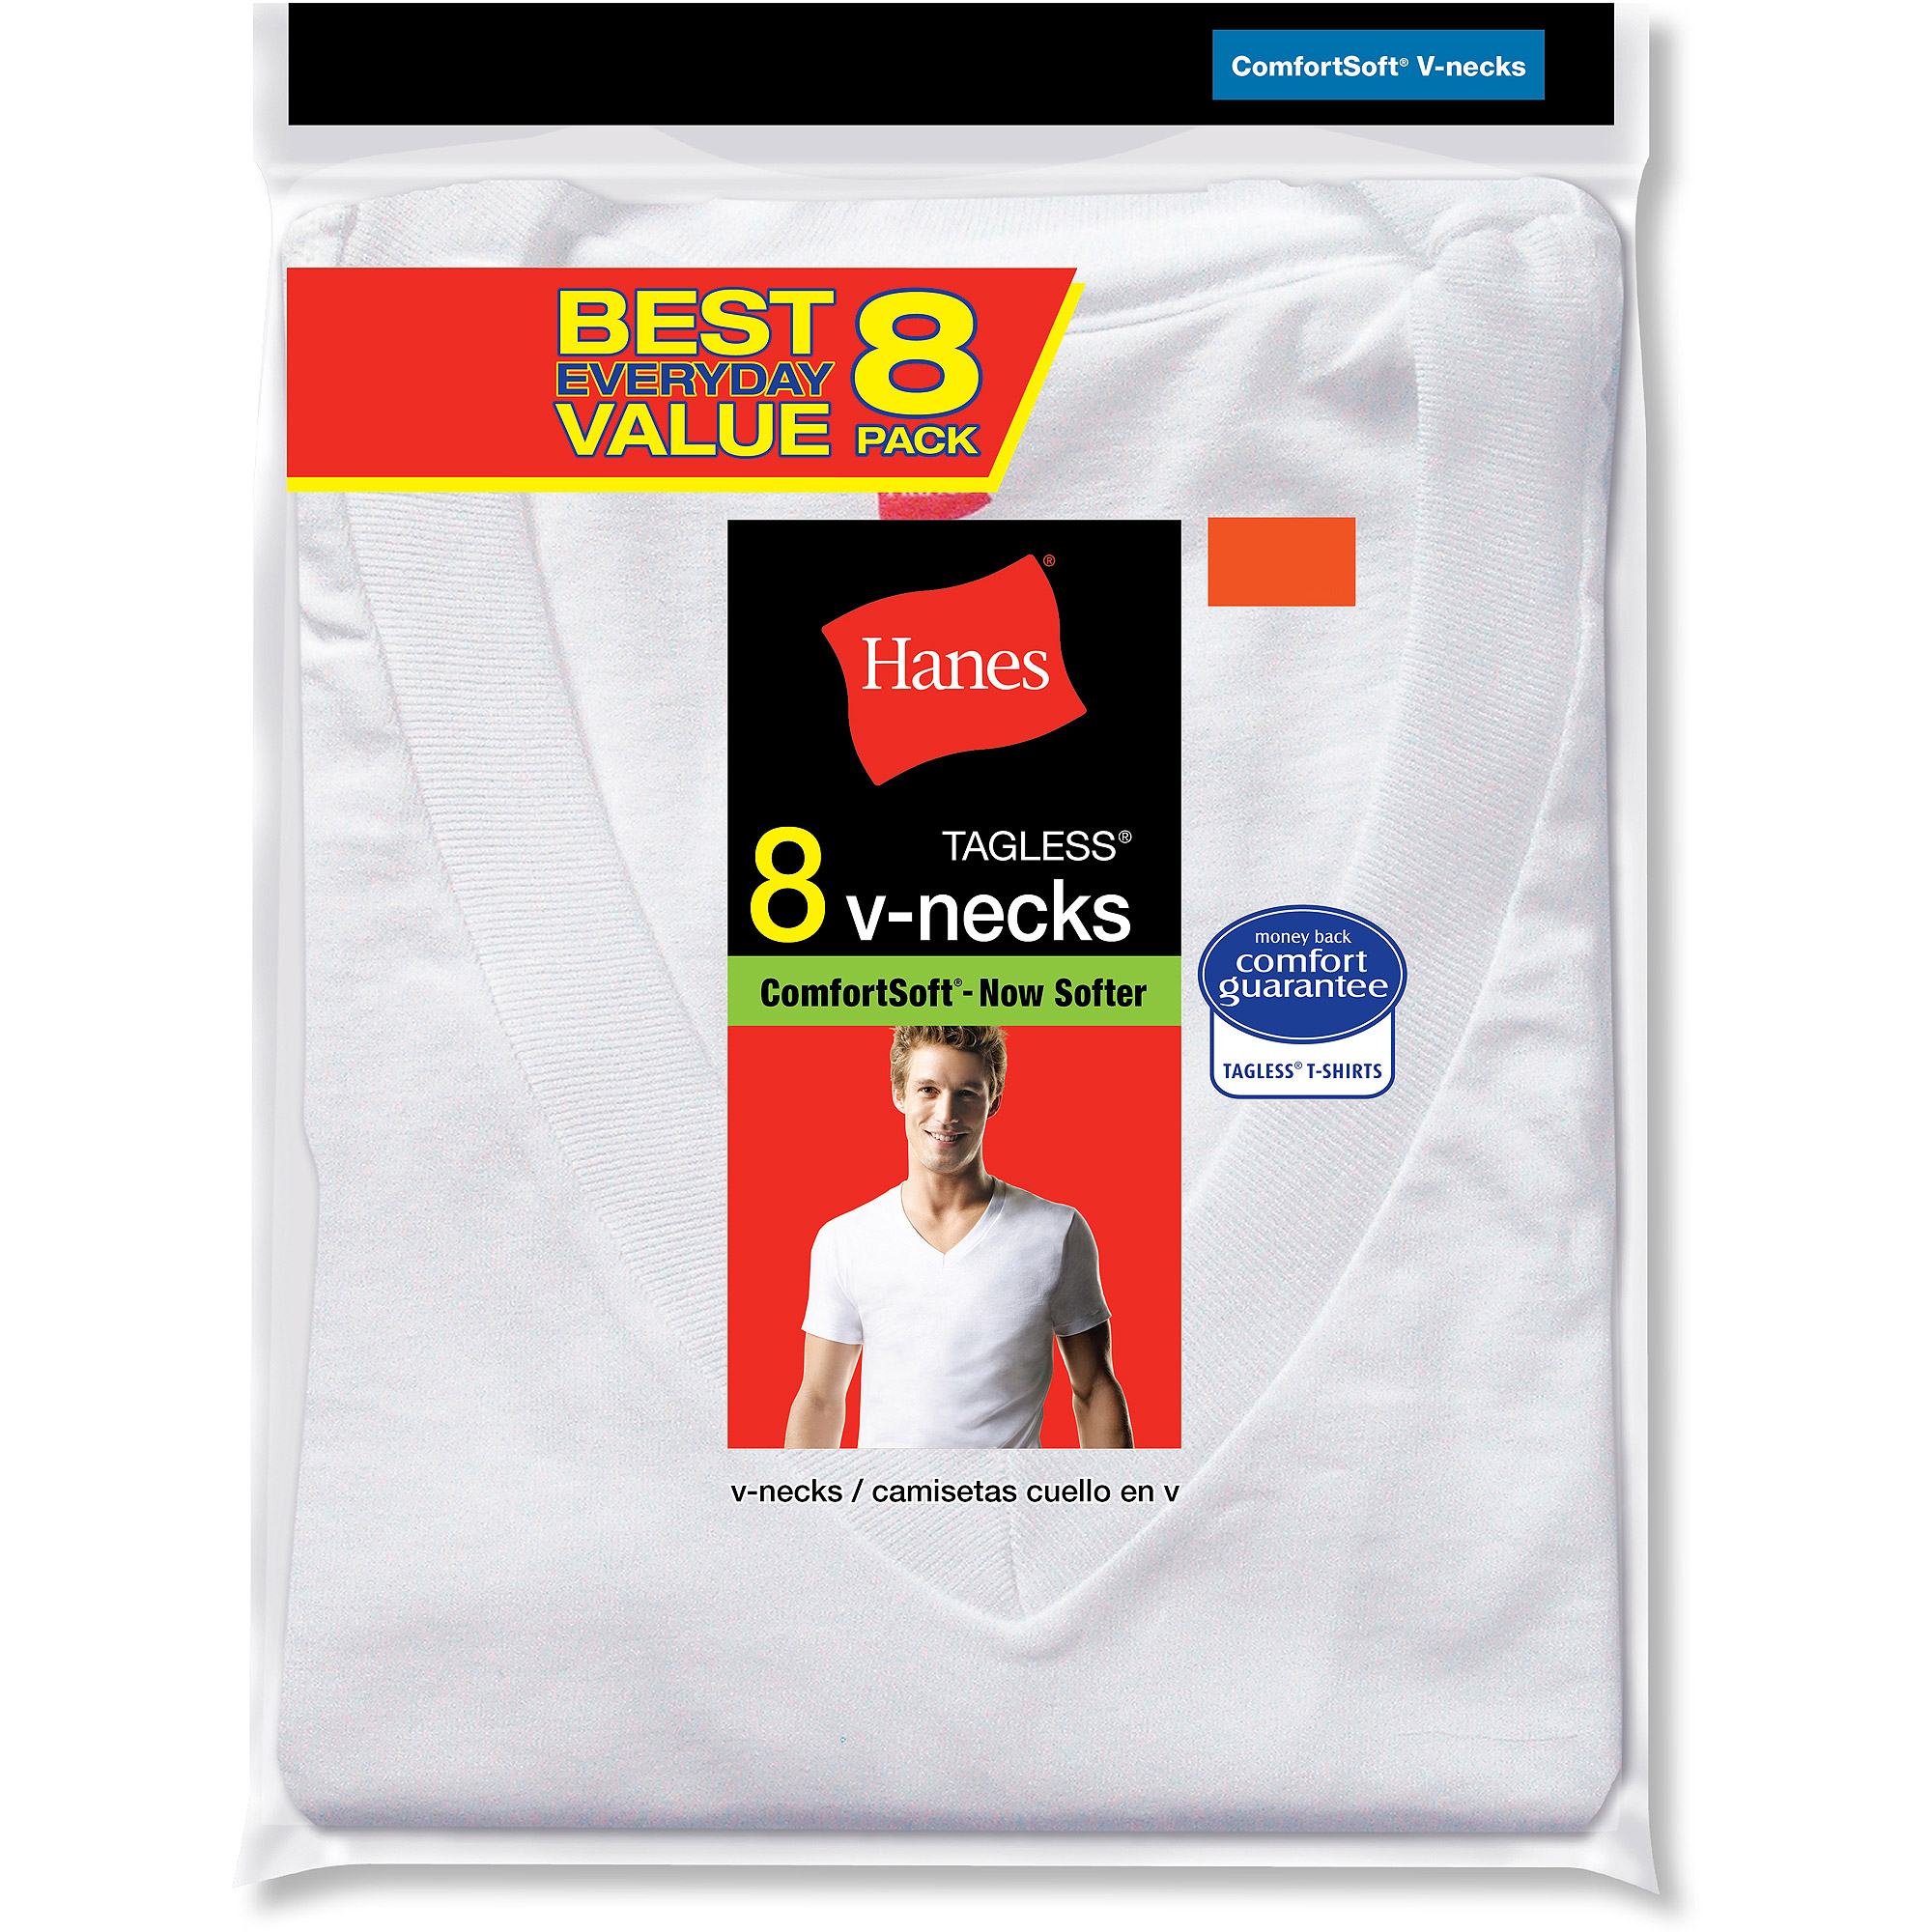 Hanes Big Men's Value 8 Pack V-Neck T-Shirts